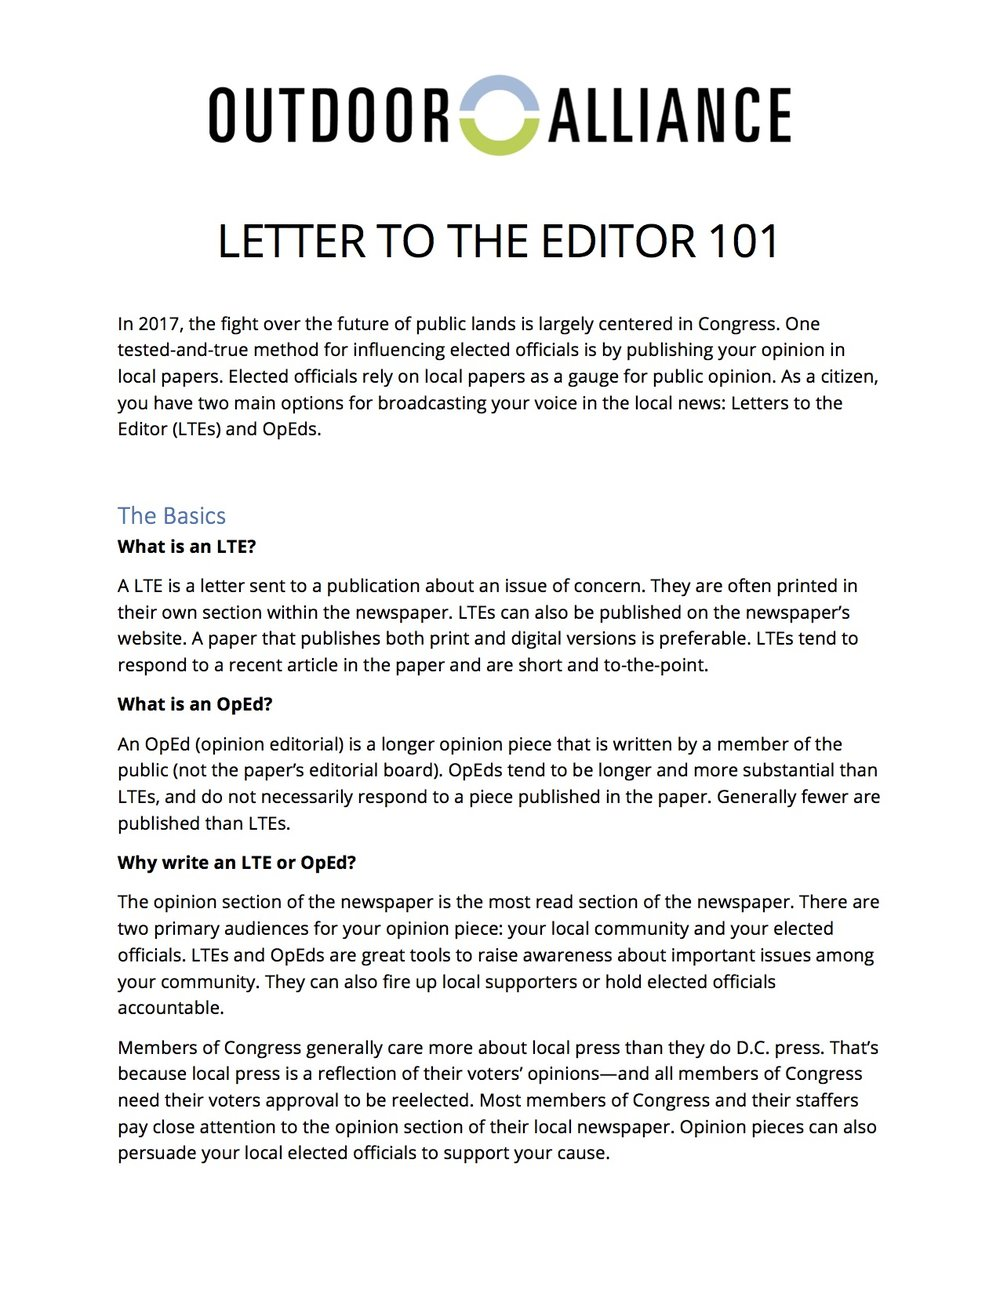 how to write a letter to the editor outdoor alliance if you don t get published that s ok wait for another timely opportunity and try again